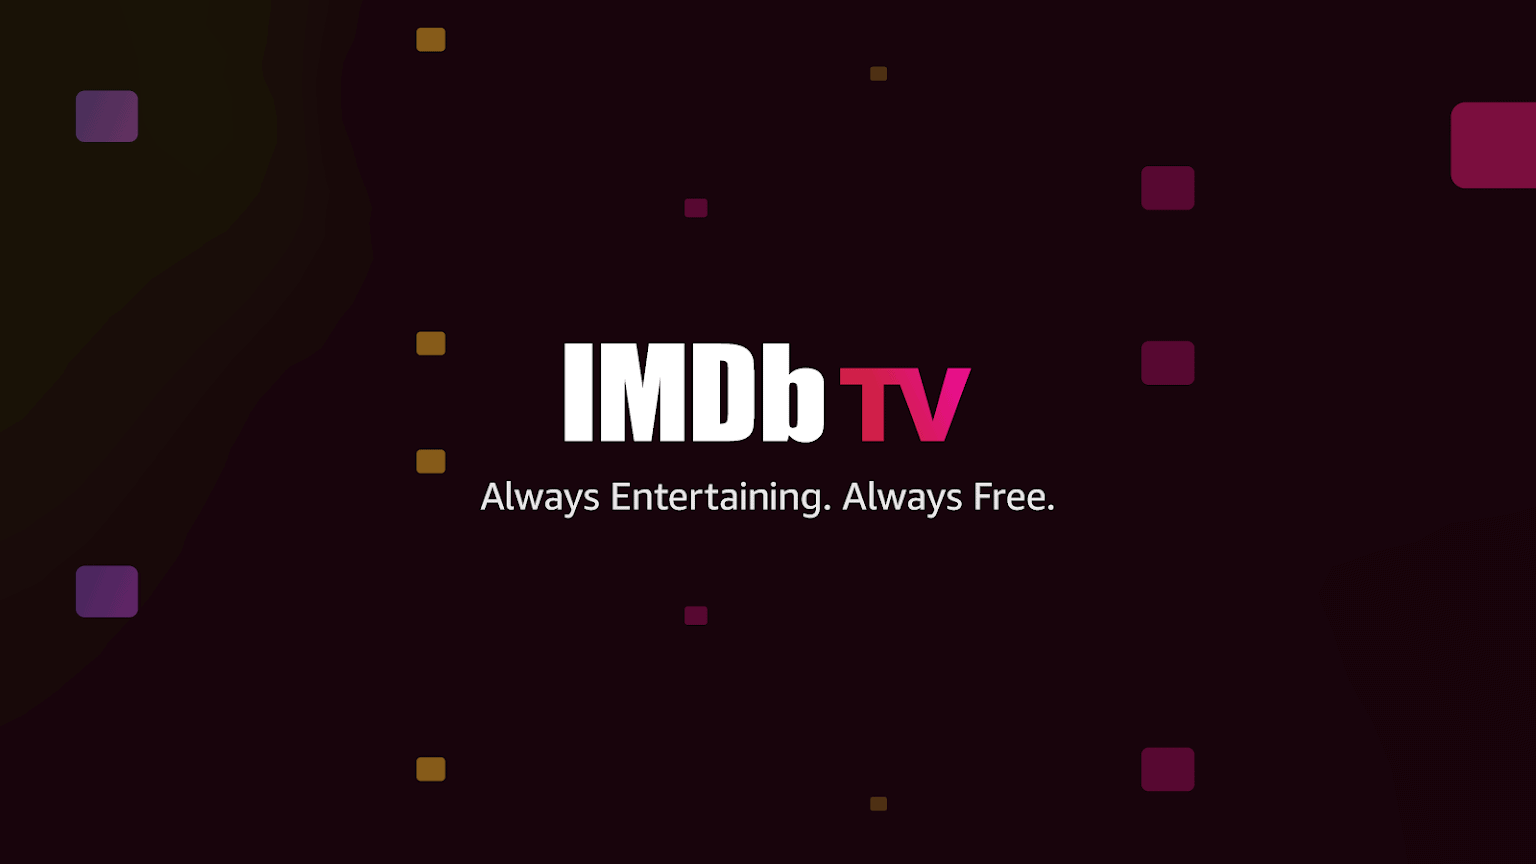 Android users can now enjoy IMDB TV App